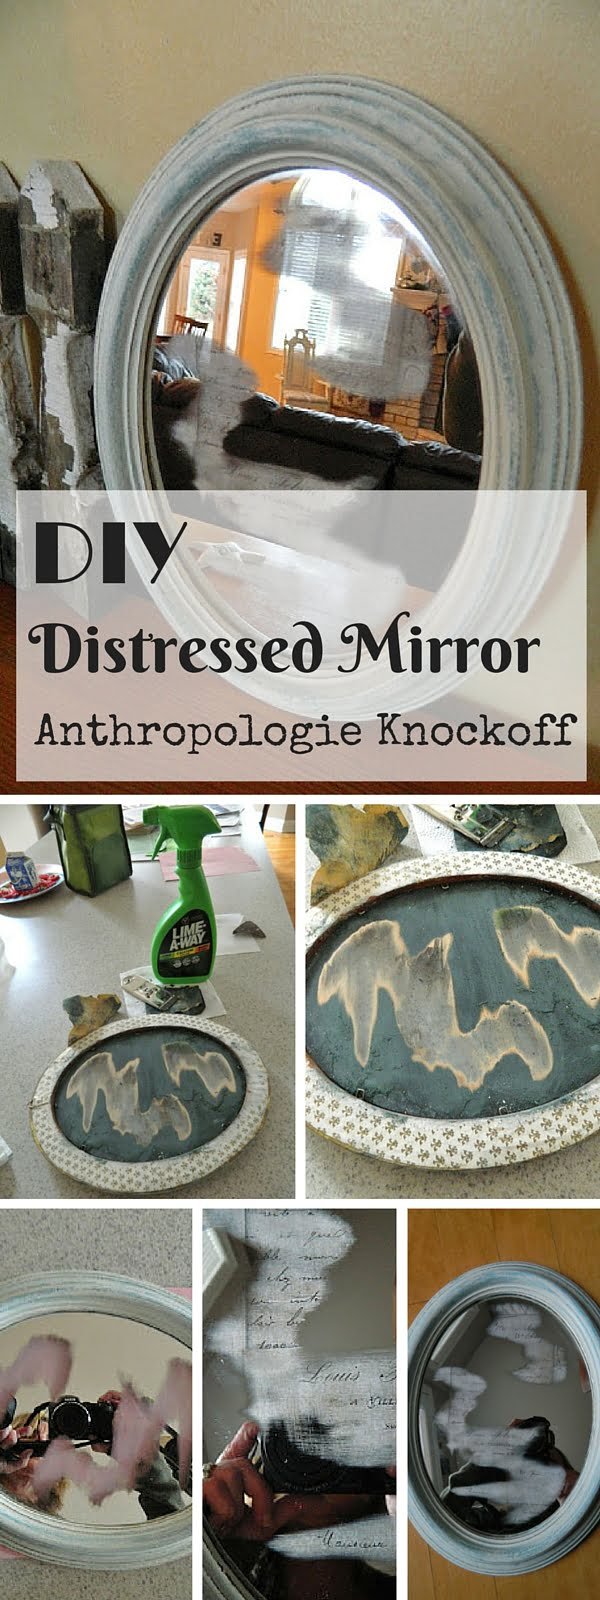 Check out the tutorial:  Anthropologie Distressed Mirror Knockoff